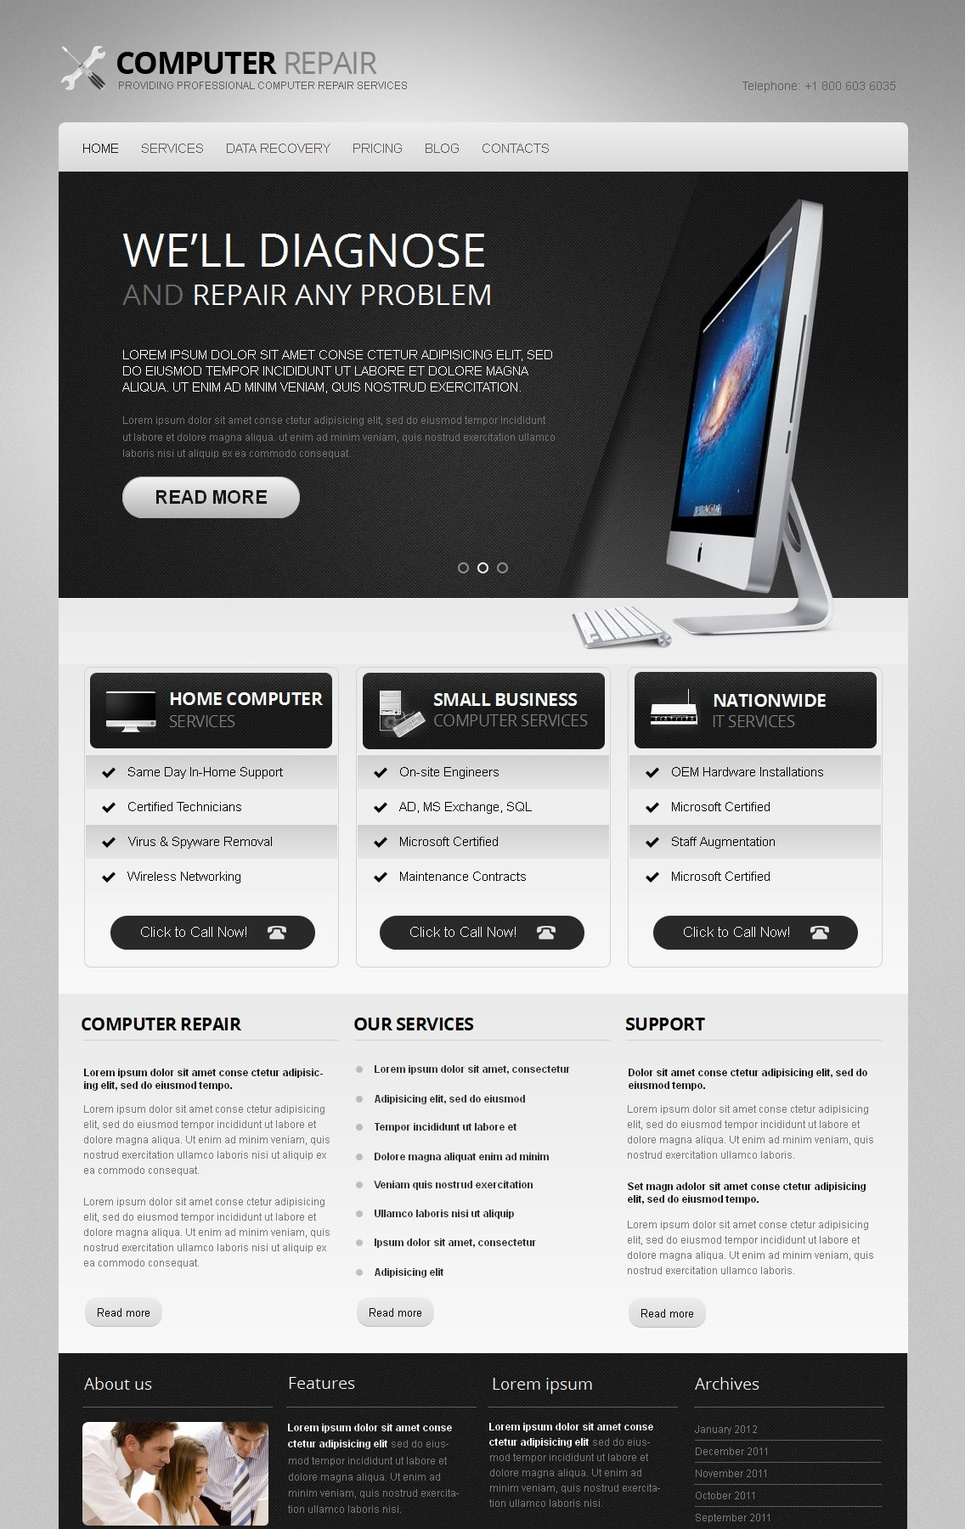 Computer Repair Company Template in Black and White Color Scheme - image